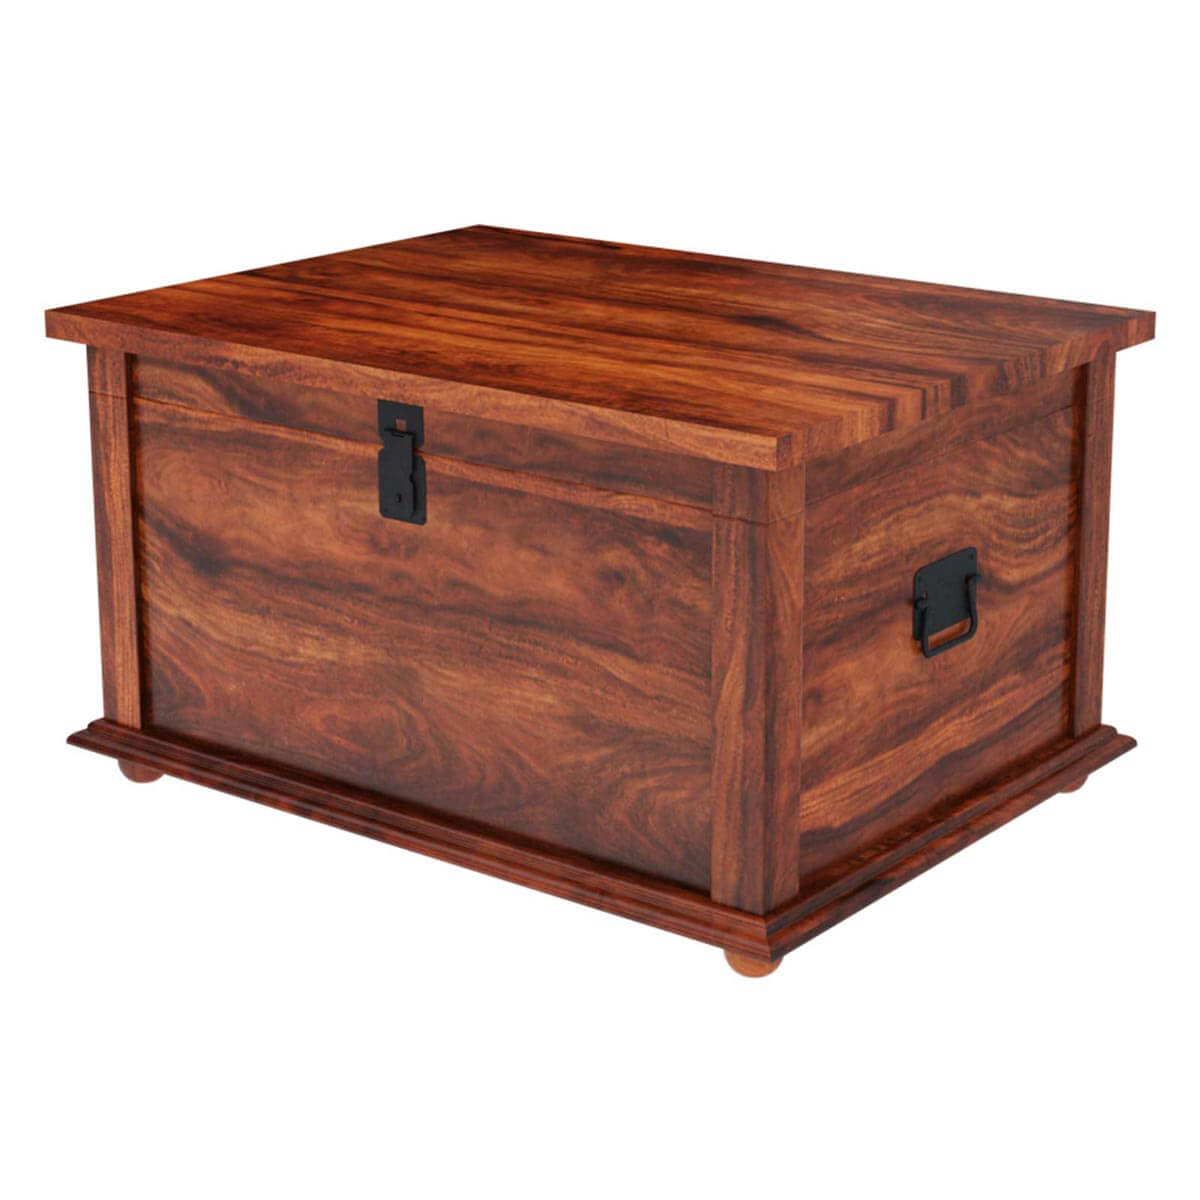 sc 1 st  Sierra Living Concepts & Primitive Wood Storage Grinnell Storage Chest Trunk Coffee Table